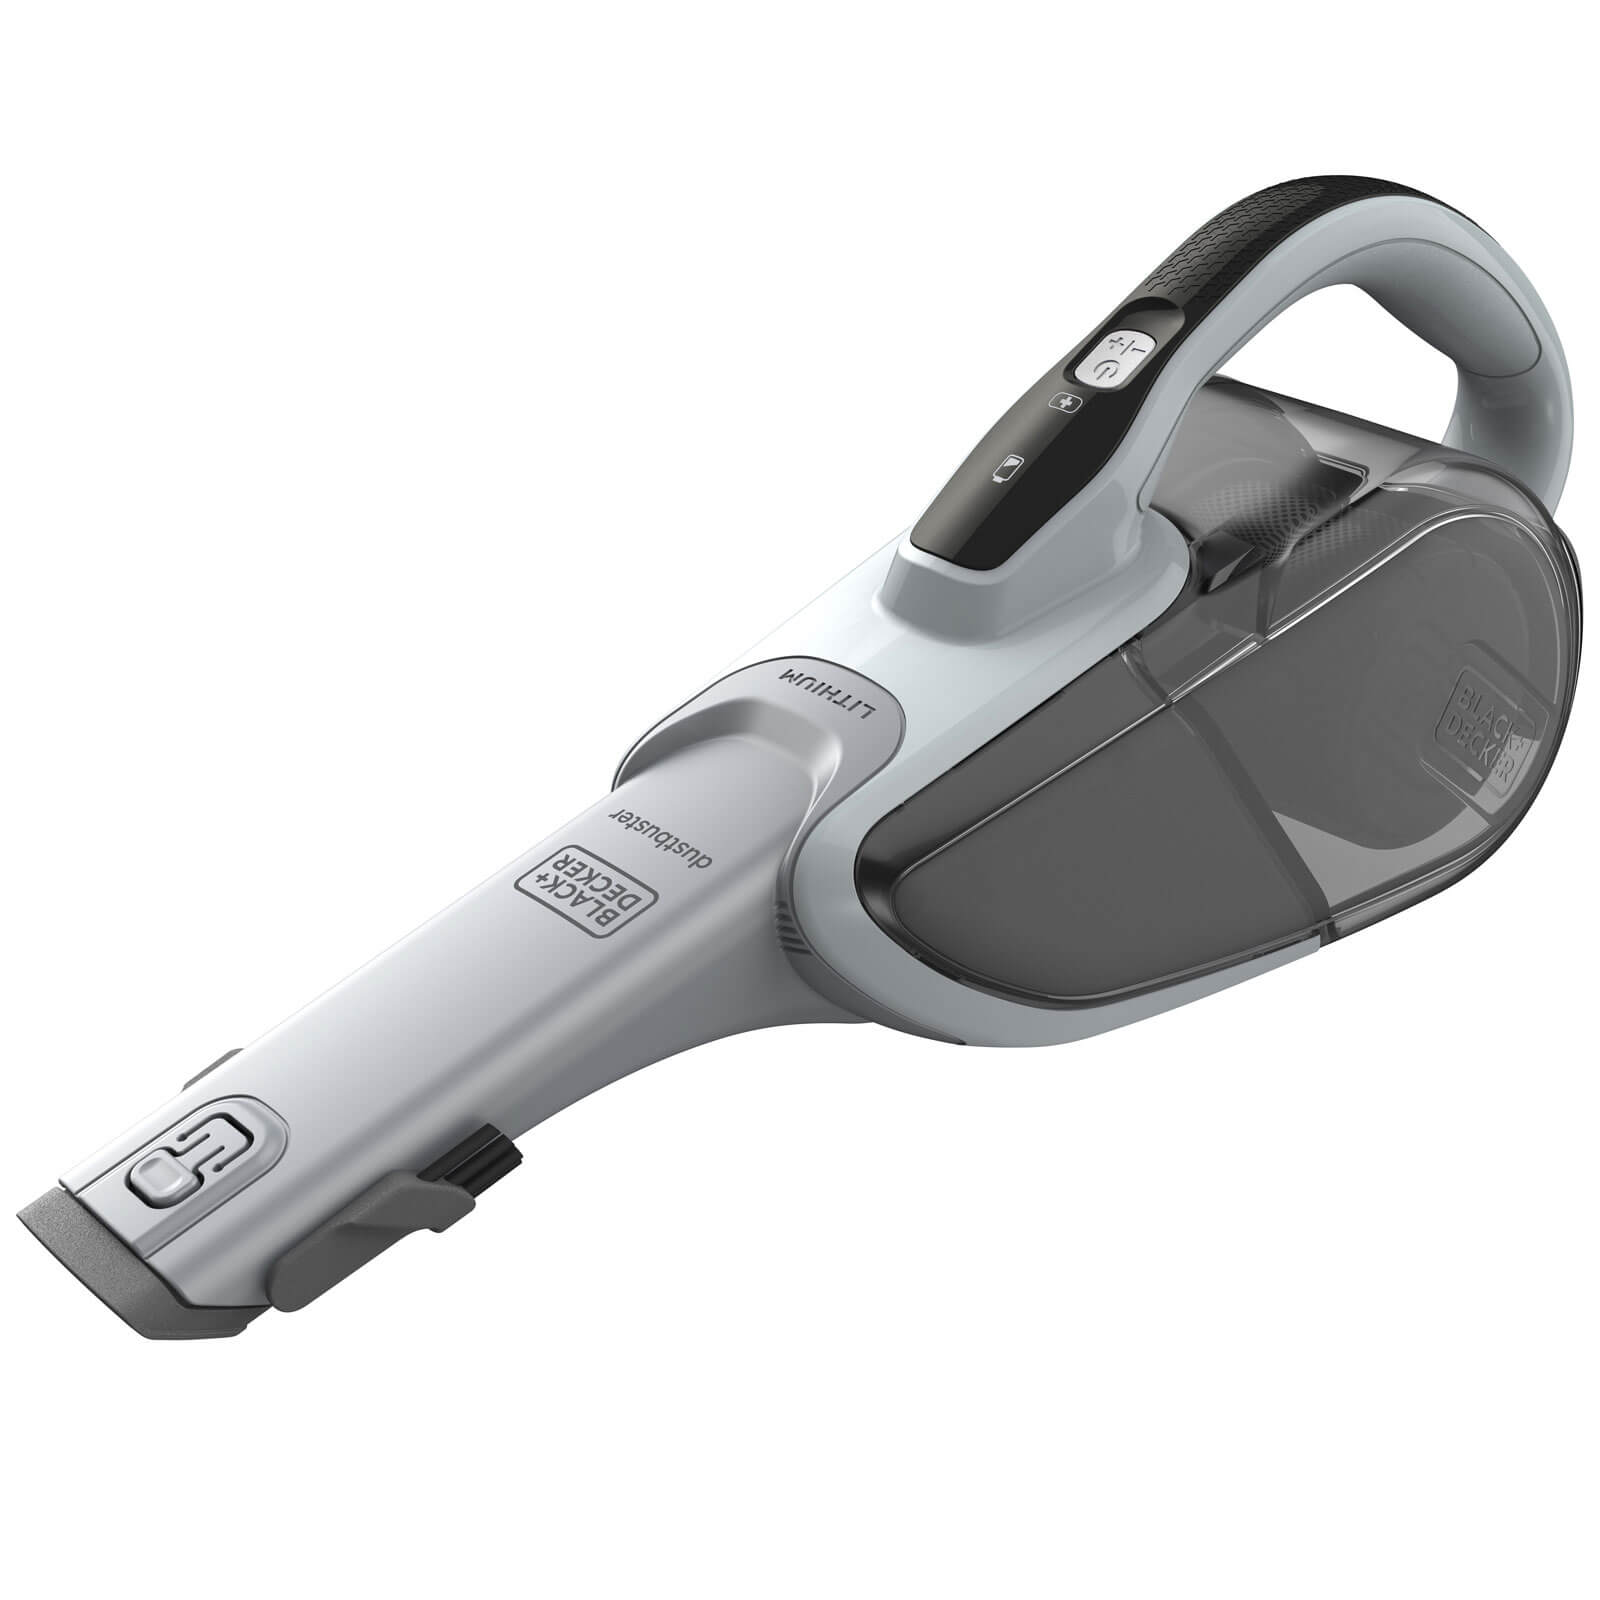 Image of Black & Decker DVJ215J 7.2v Cordless Gen10 Cyclonic Dustbuster 1 x 1.5ah Integrated Li-ion Charger No Case